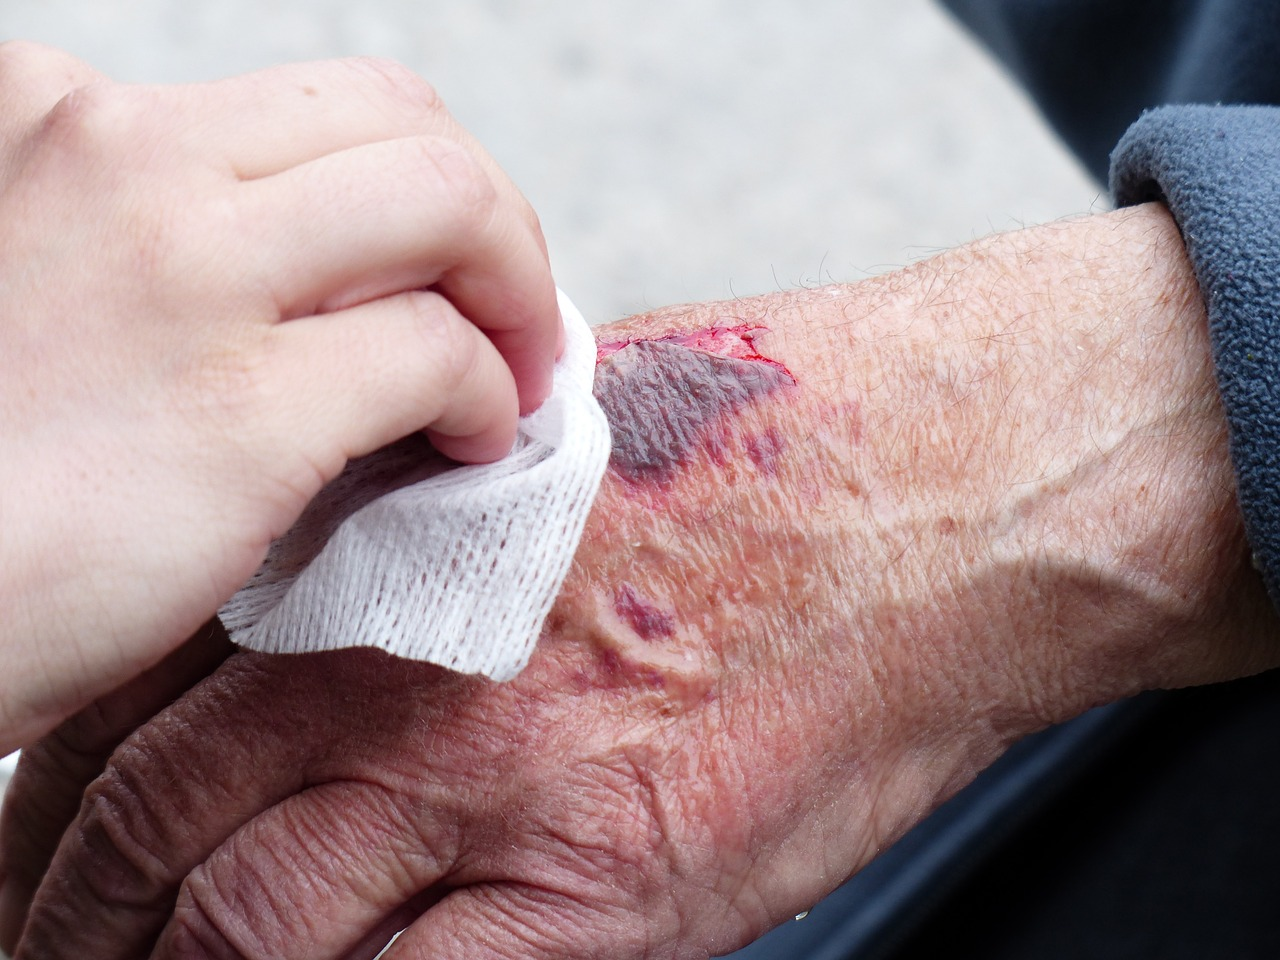 Regain Health Ltd - Wound care services showing how a patient is treated by a nurse